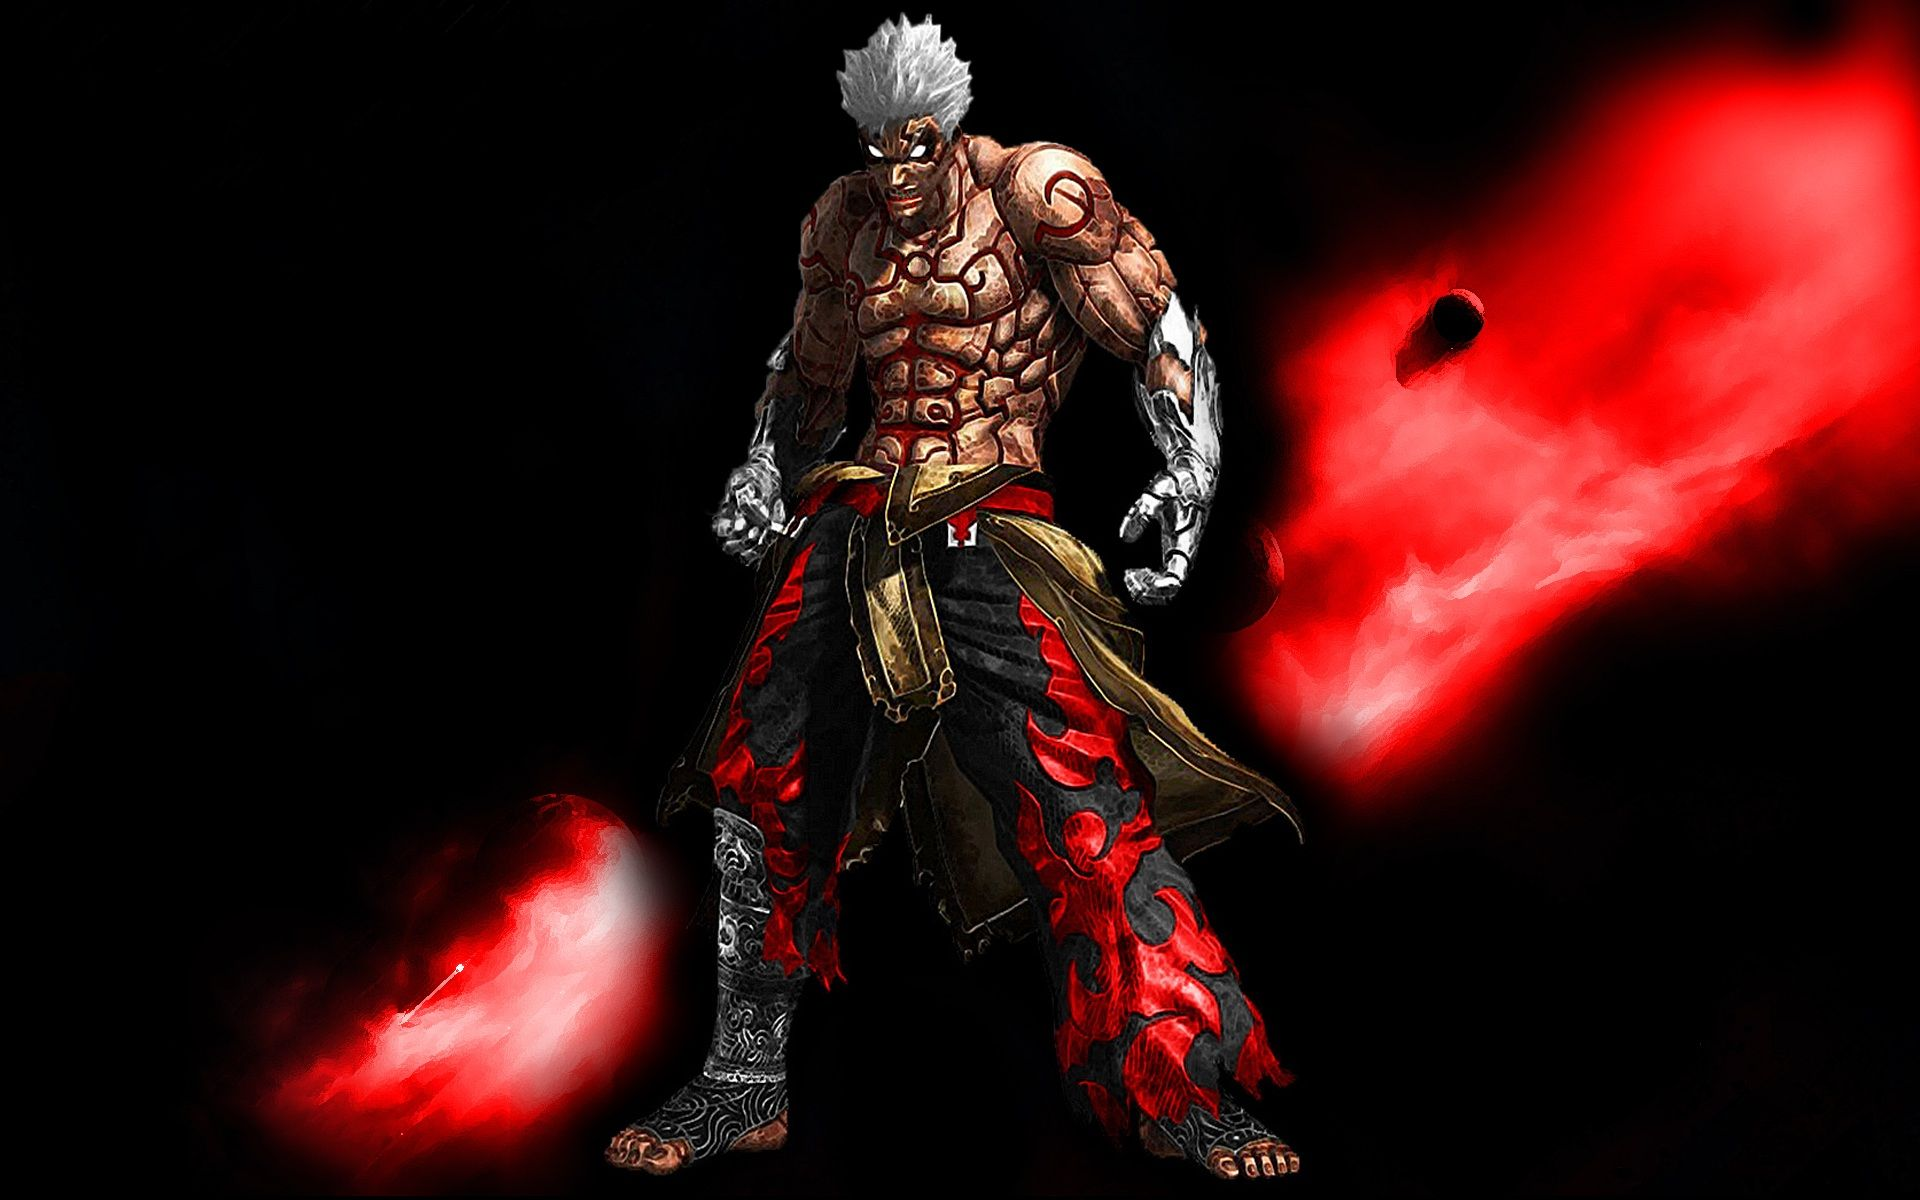 Images About Asura On Pinterest Buddhists Artworks And 1920 1080 Asura S Wrath Wallpapers 27 Wallpapers Adorable Wall Asura S Wrath Wrath Comic Books Art